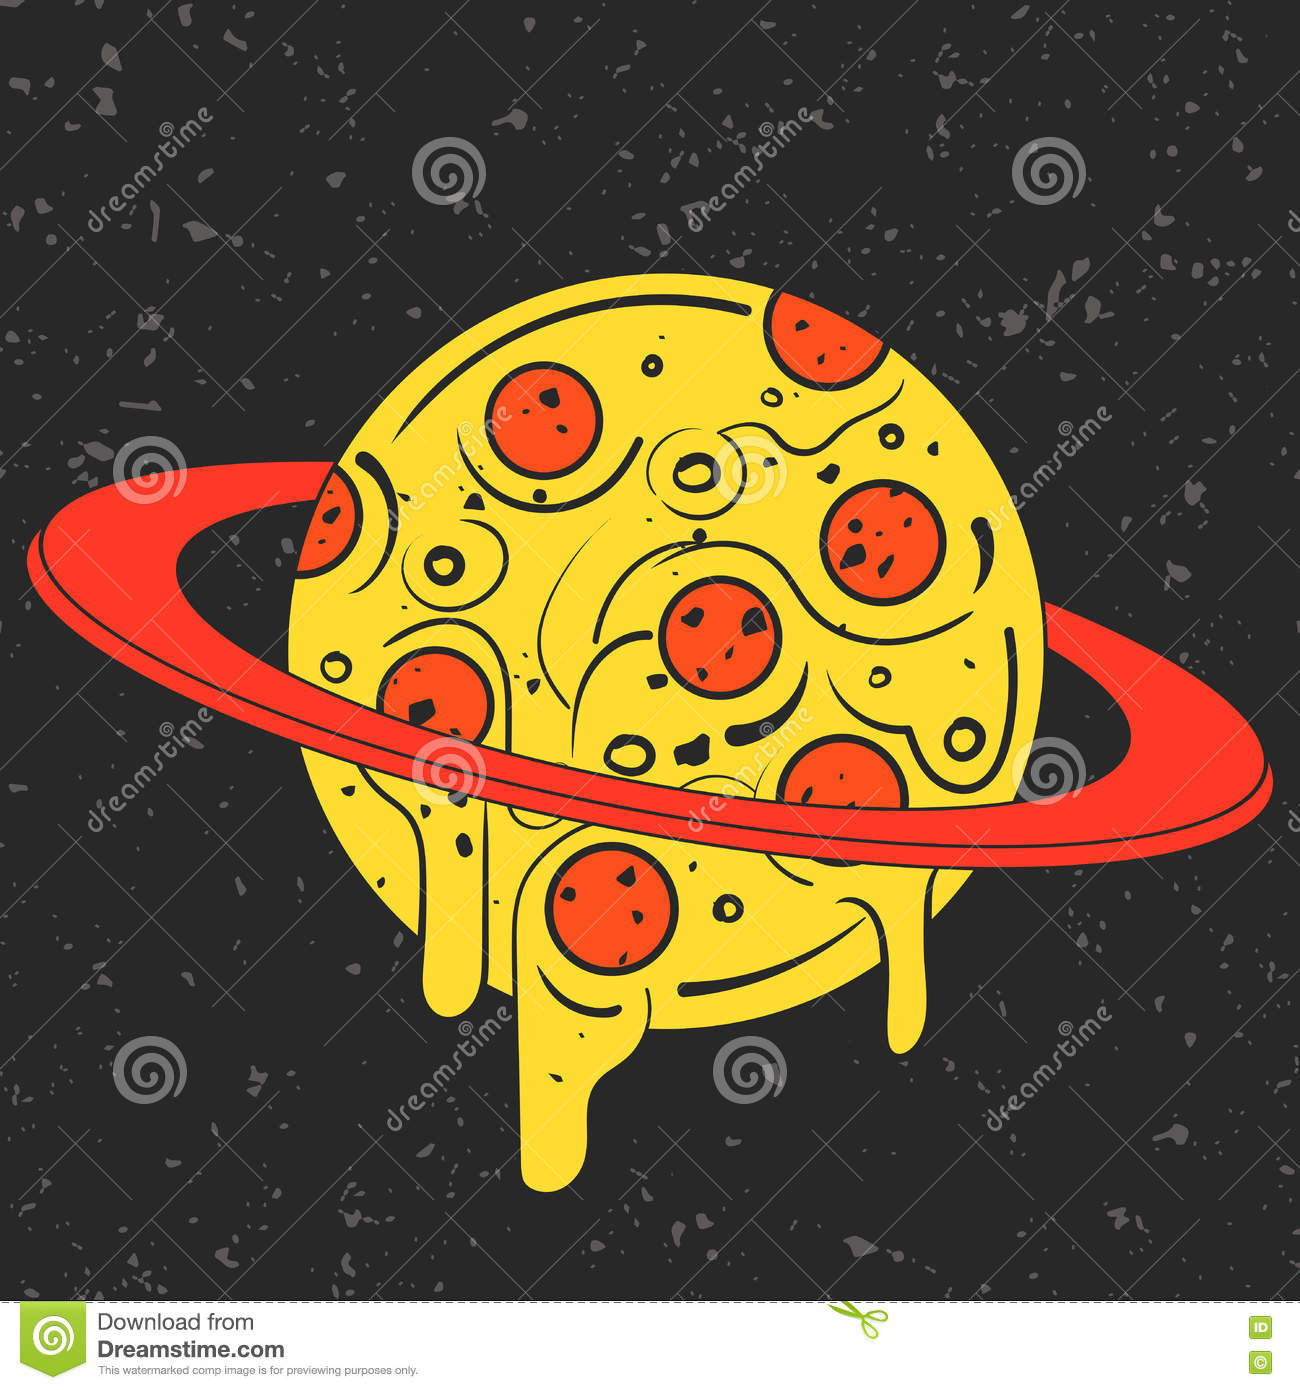 Hand drawn funny illustration of pizza looking planet in for Space pizza fabric